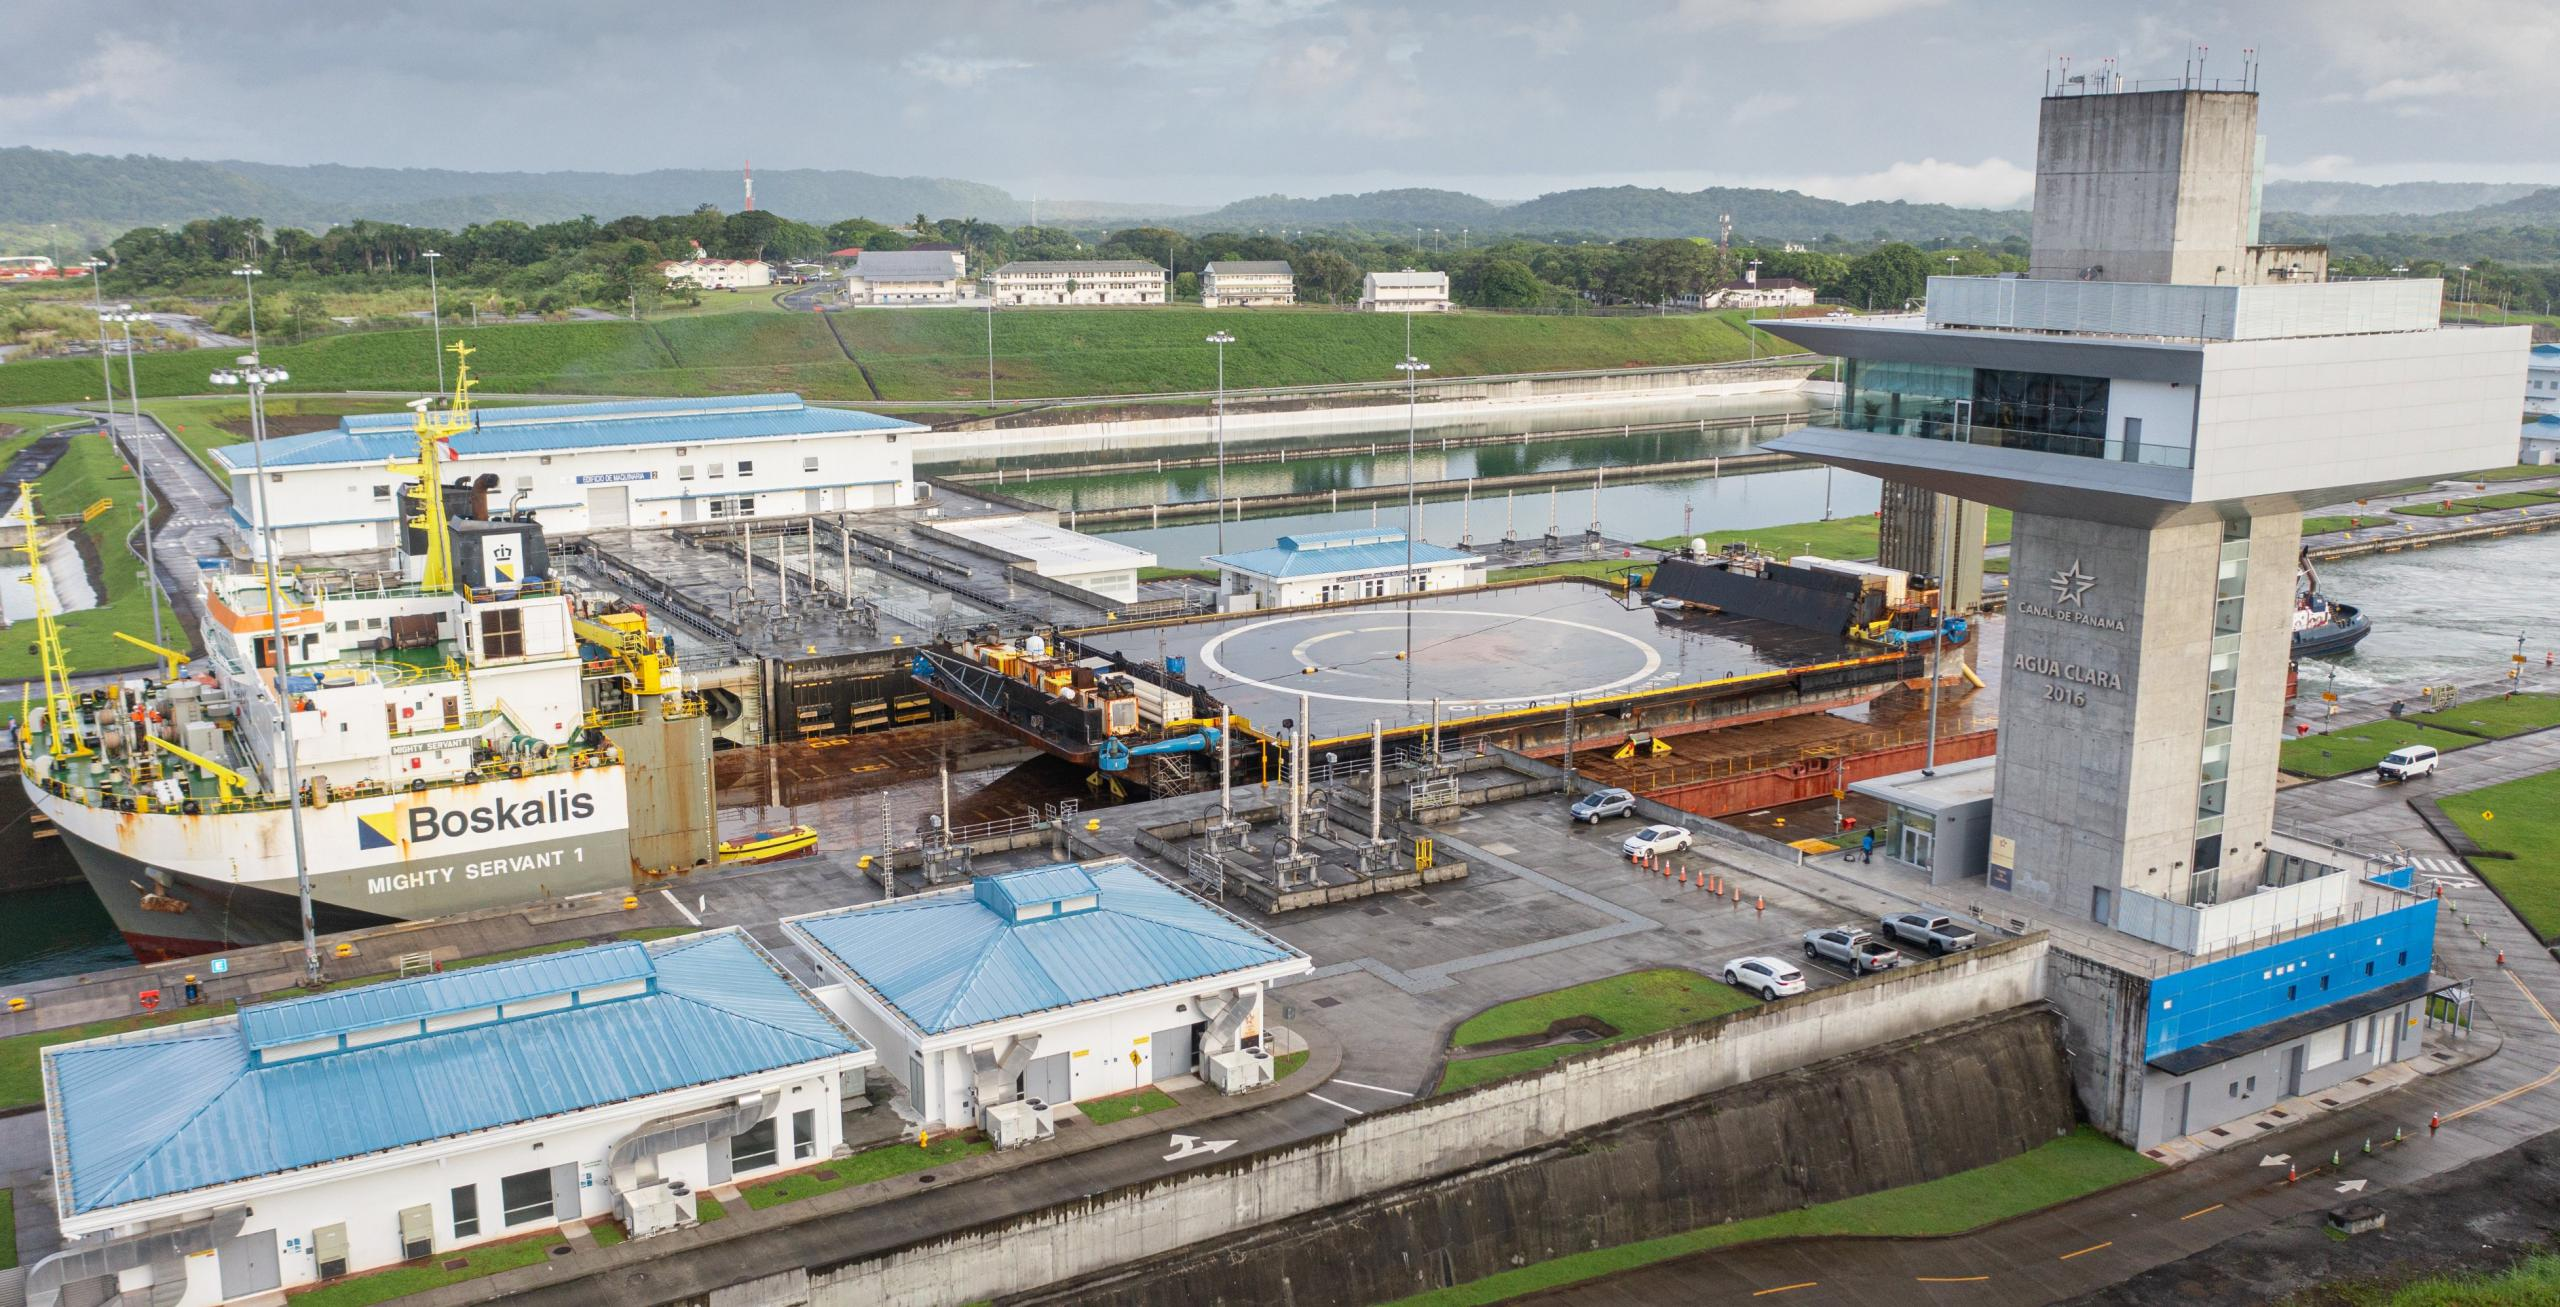 drone ship OCISLY canal transit 062521 (@ThePanamaCanal) 3 crop (c)